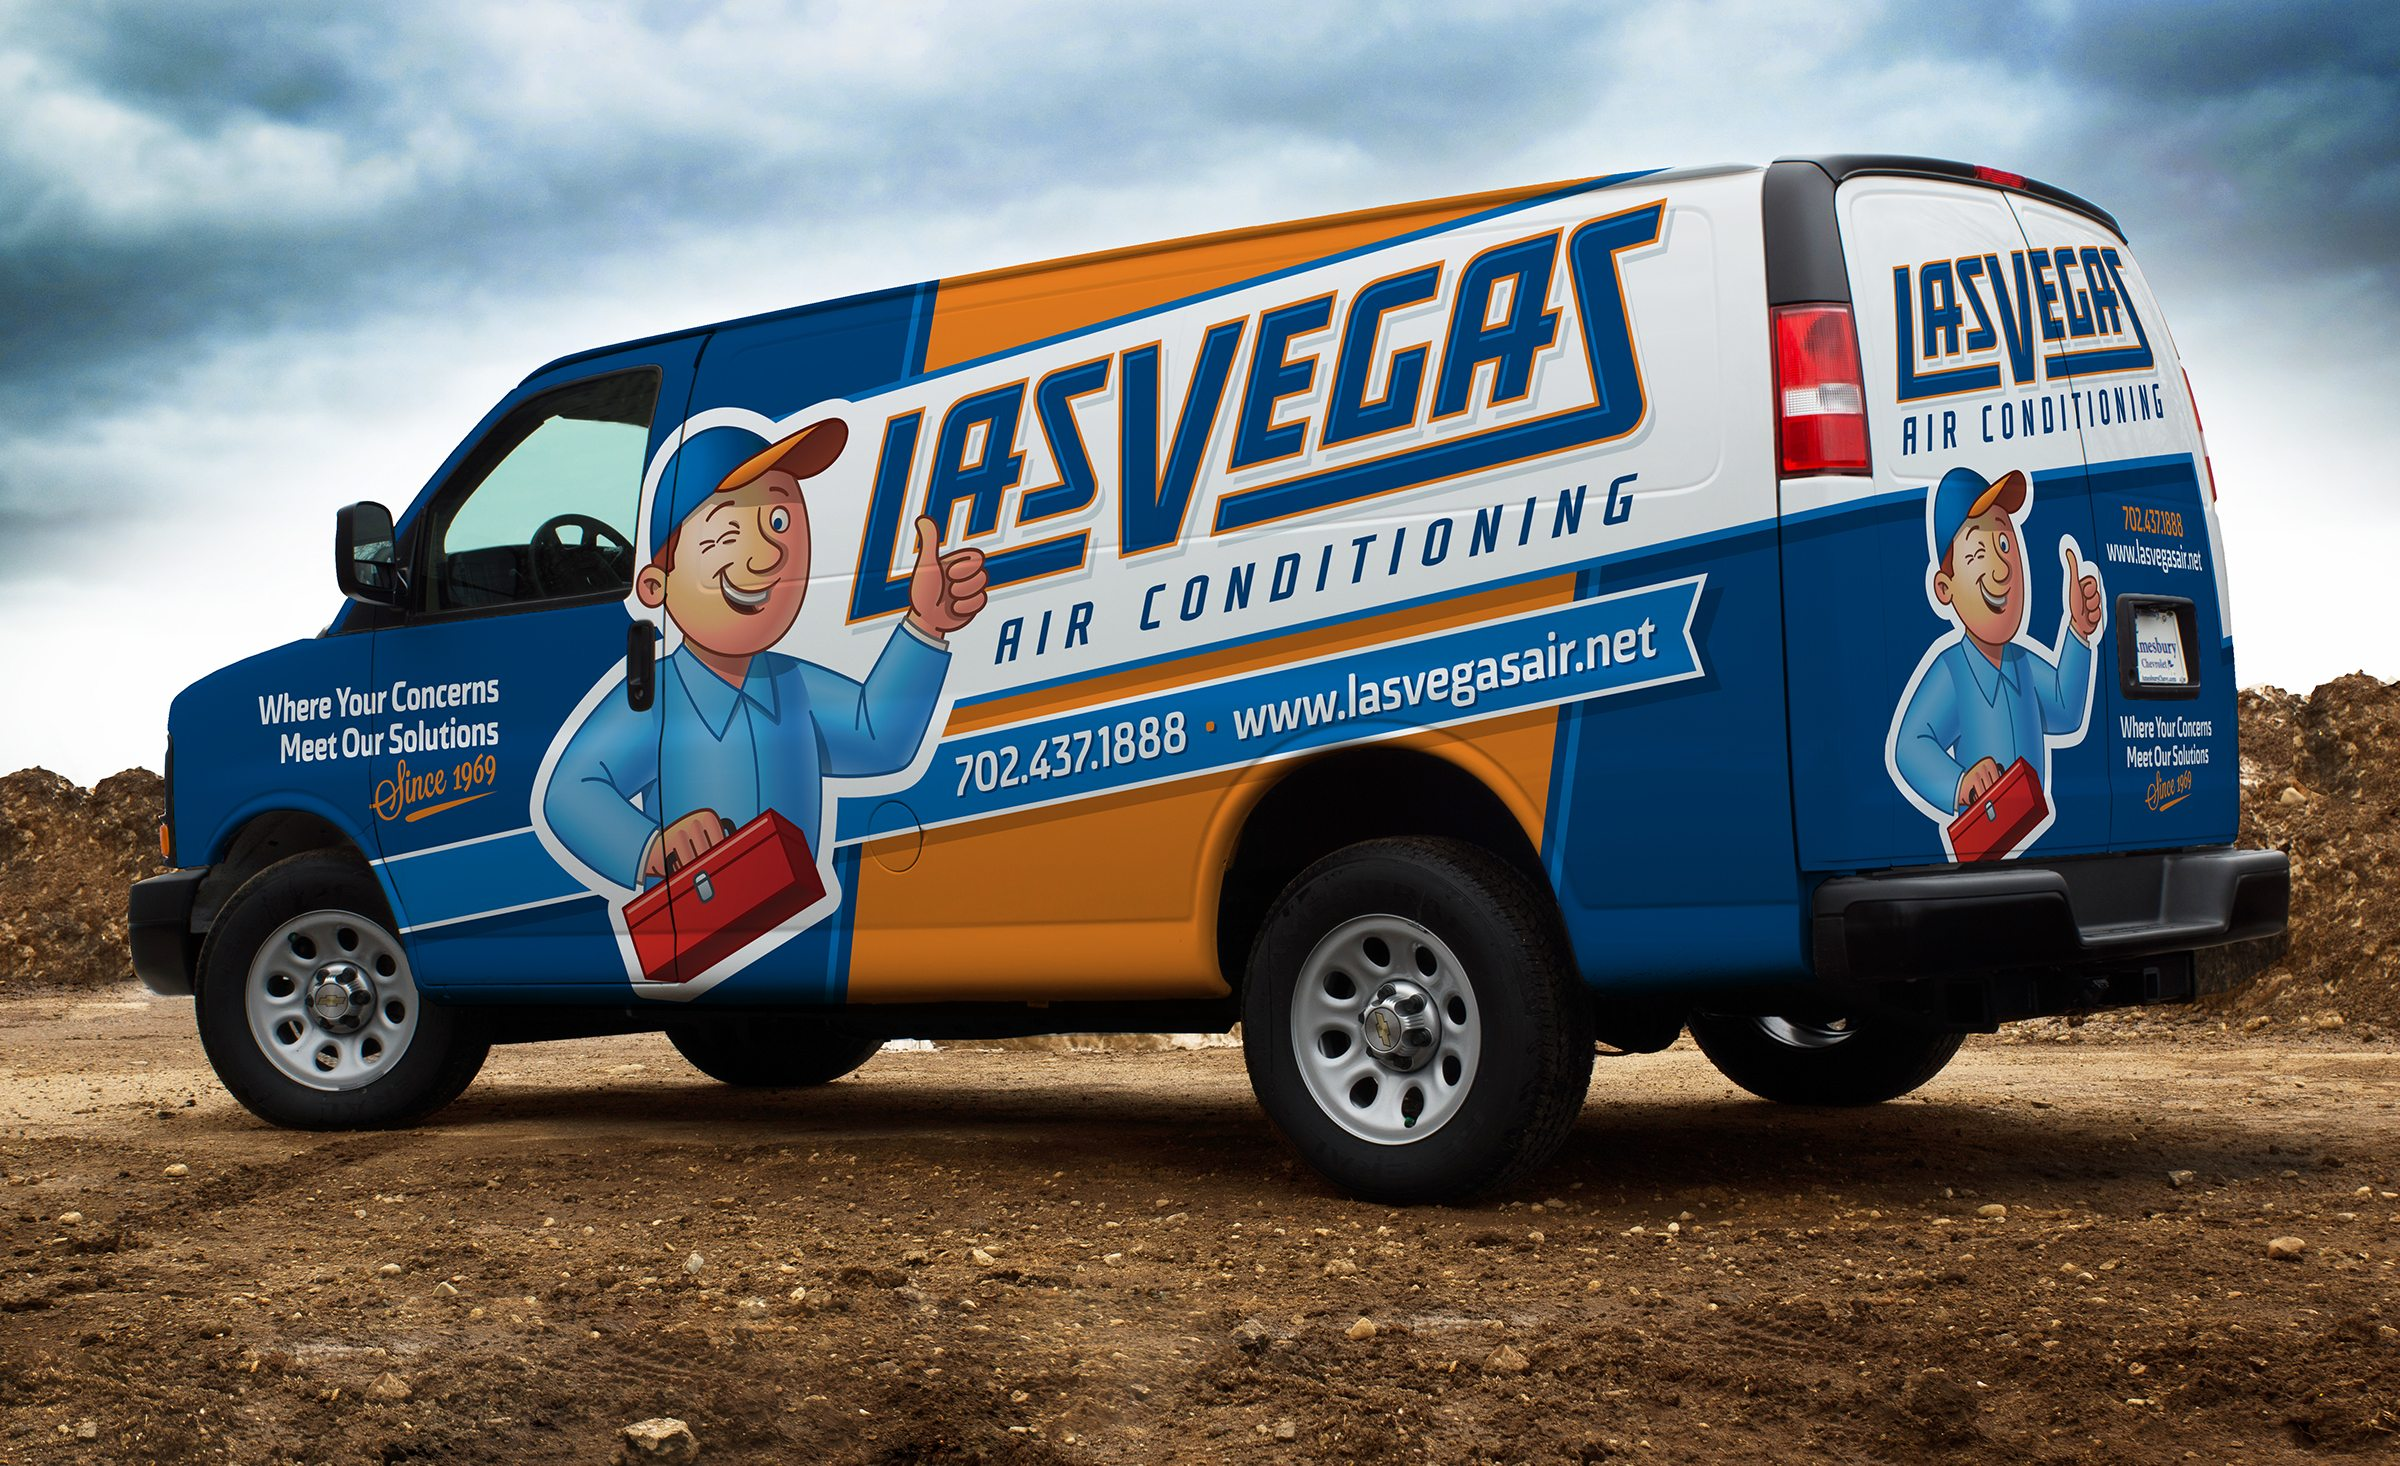 Top 5 Tips For Designing The Best Truck Wraps